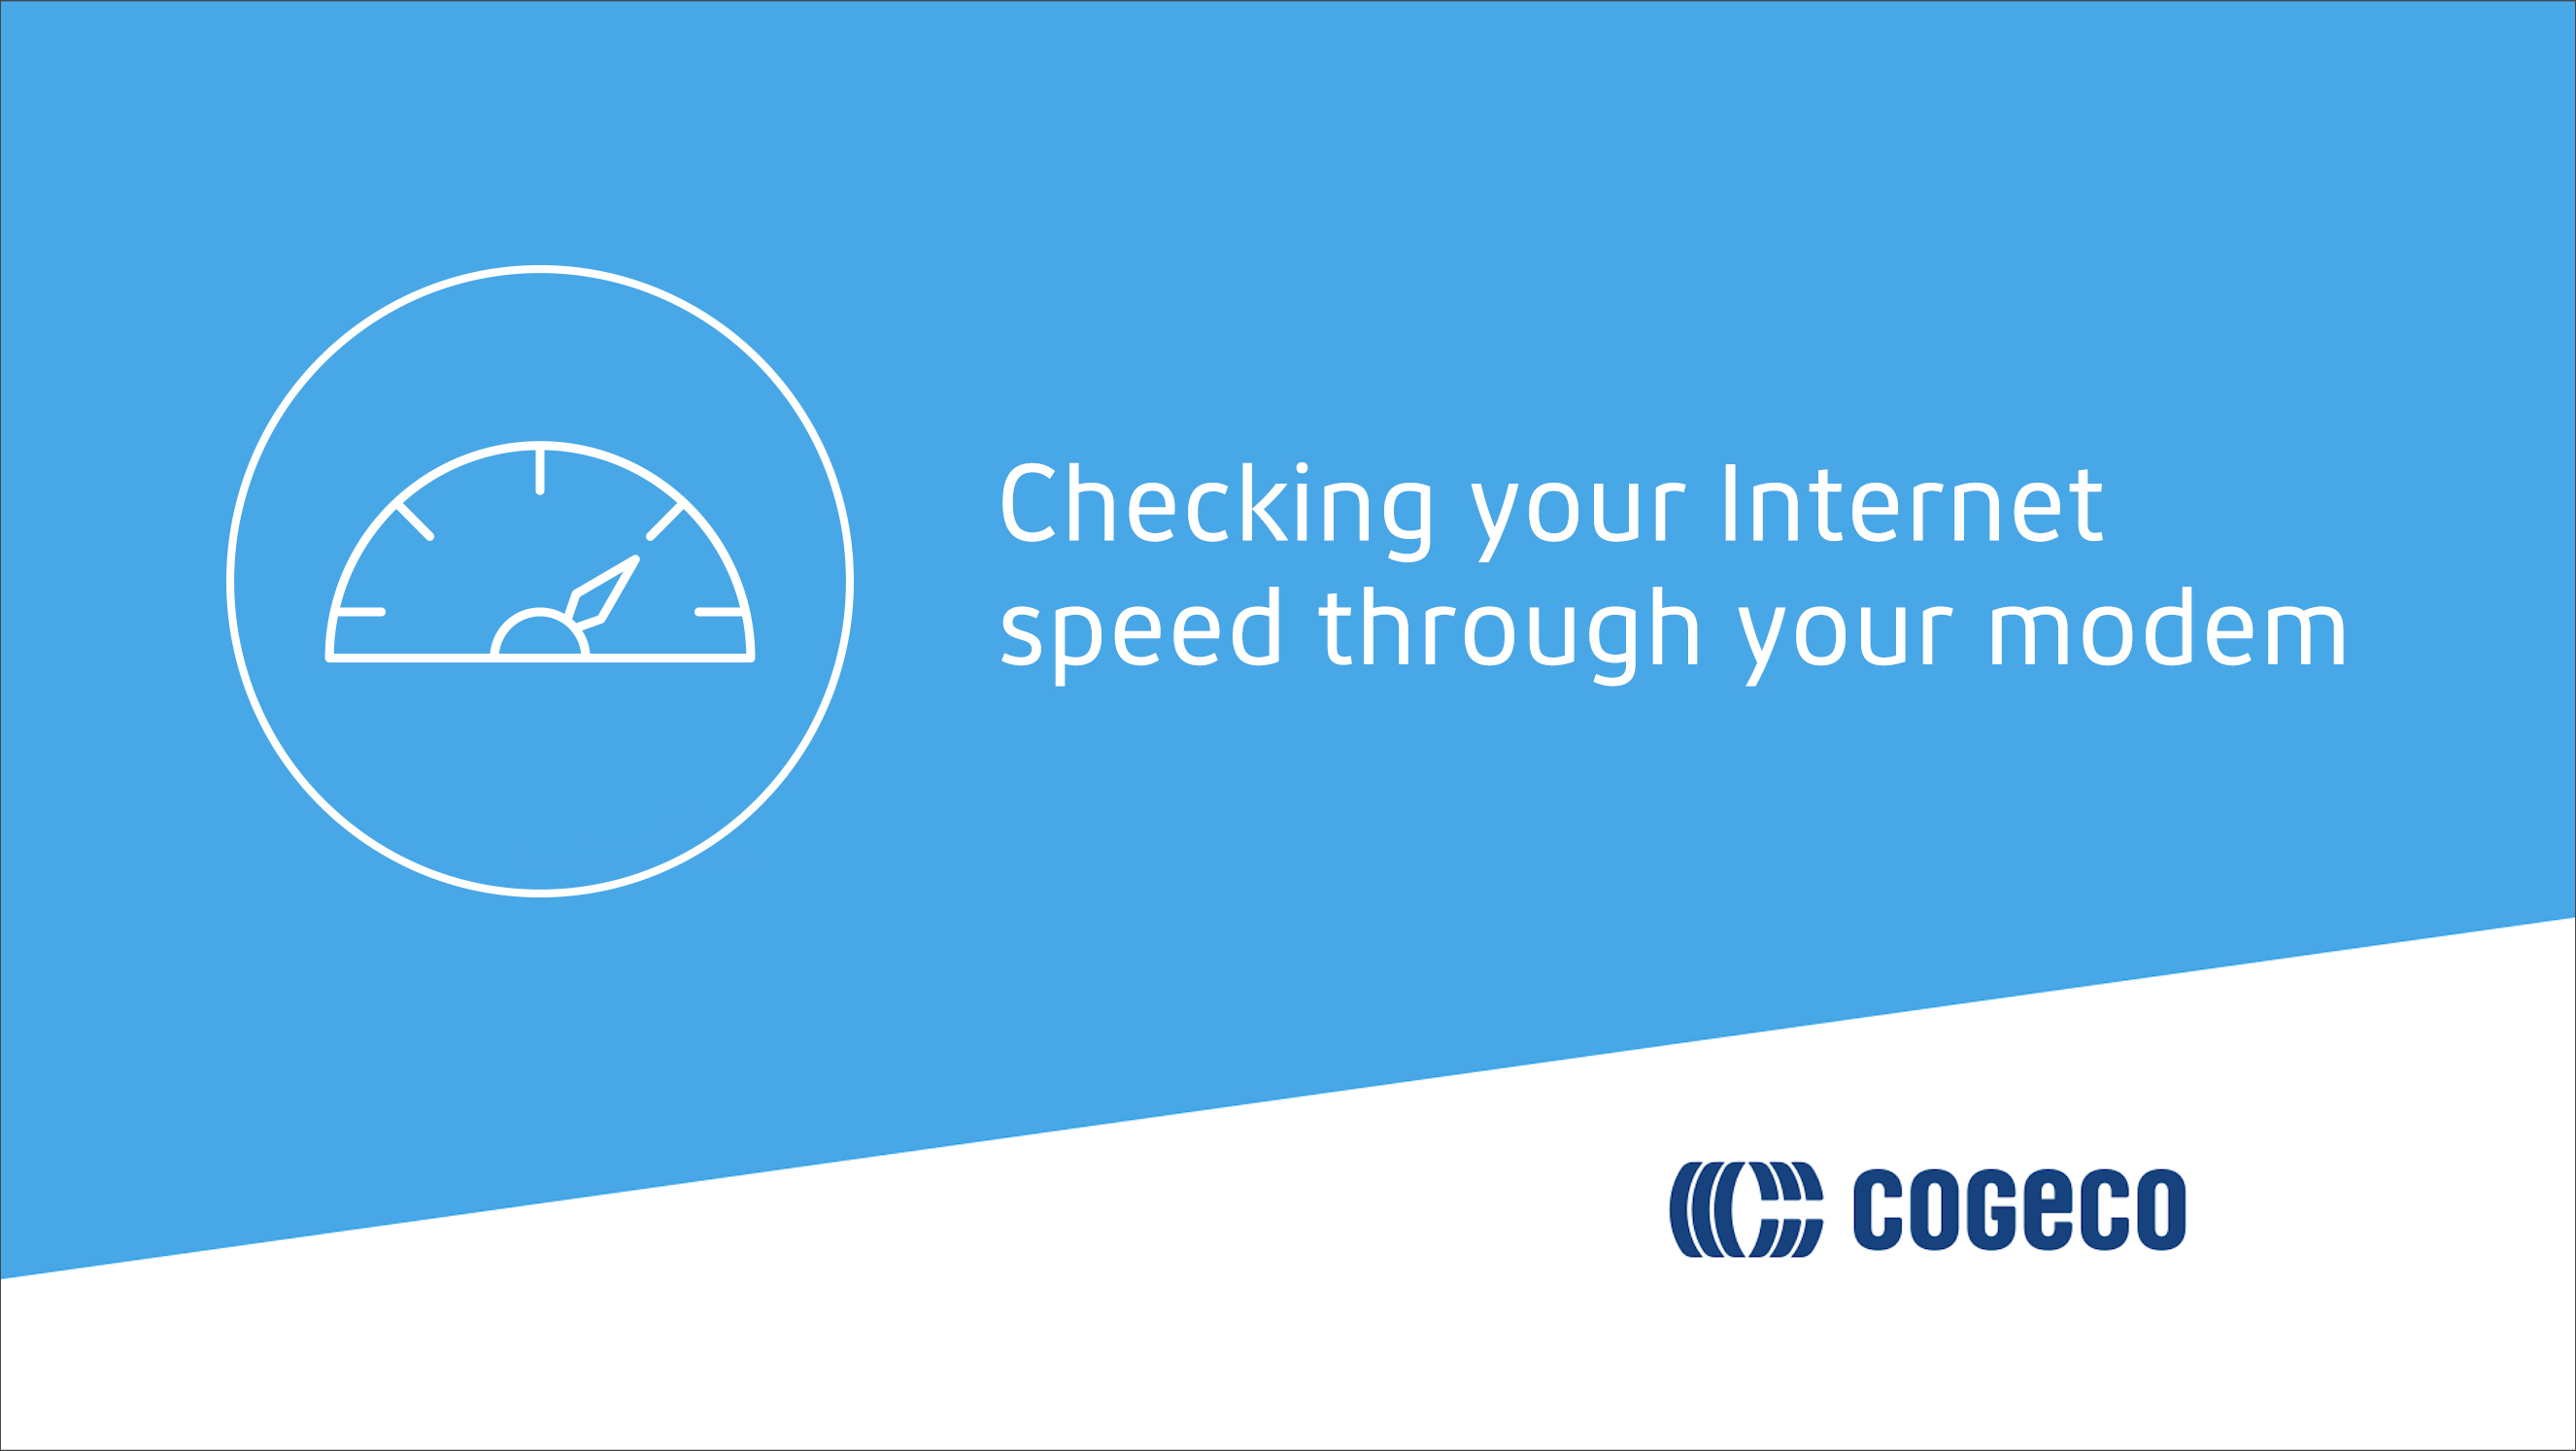 Checking your internet speed through your modem